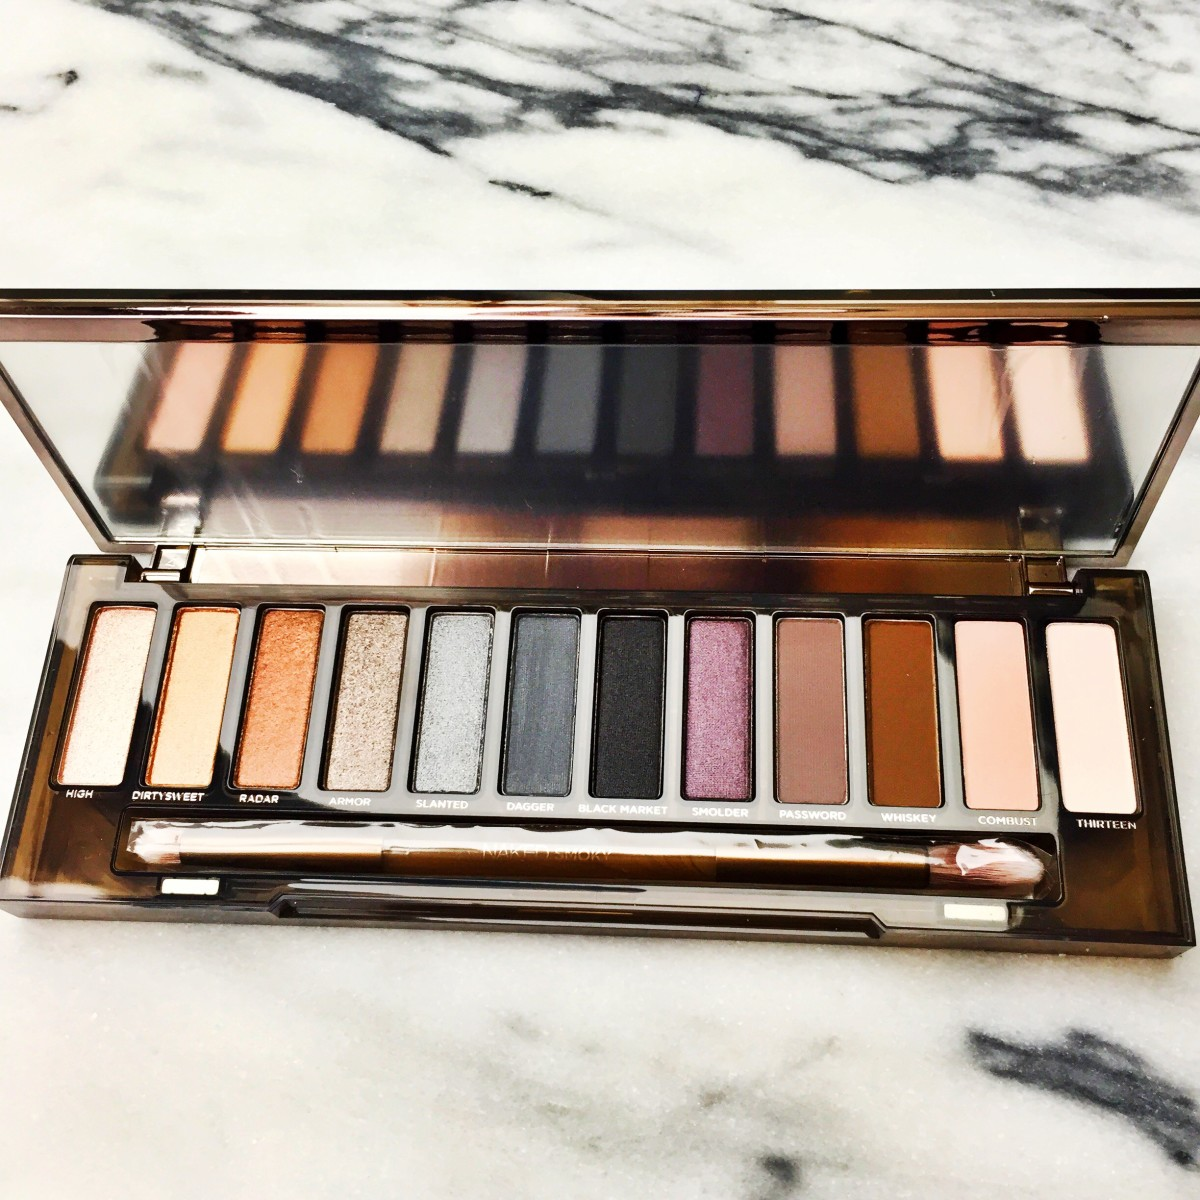 NEW: Urban Decay Naked Smoky Palette Is Available July 8